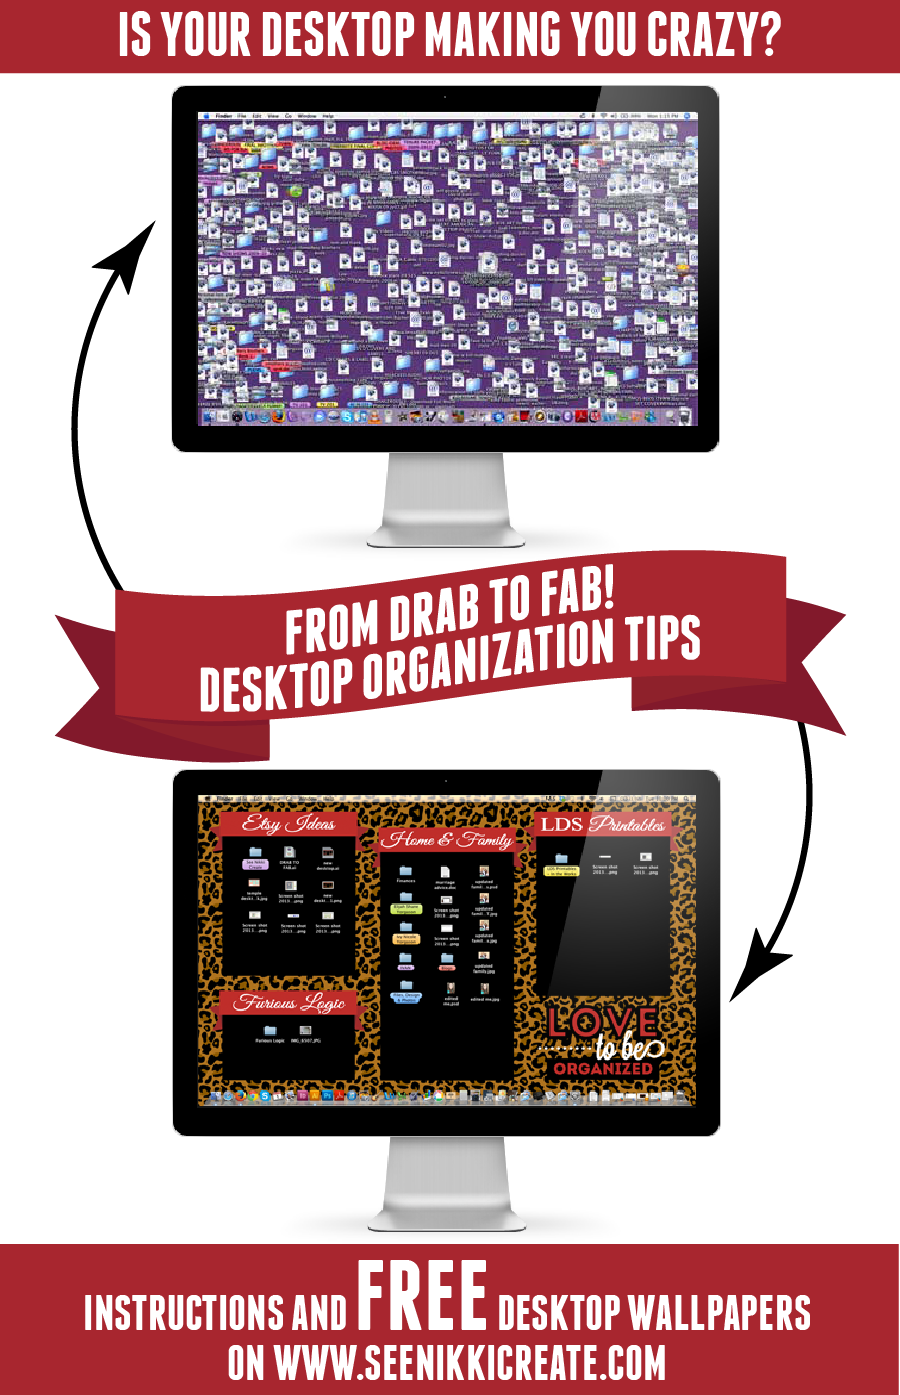 Desktop-and-Instructions-on-How-to-Organize-your-Desktop-FREEBIE-DOWNLOAD-wallpaper-wp4004330